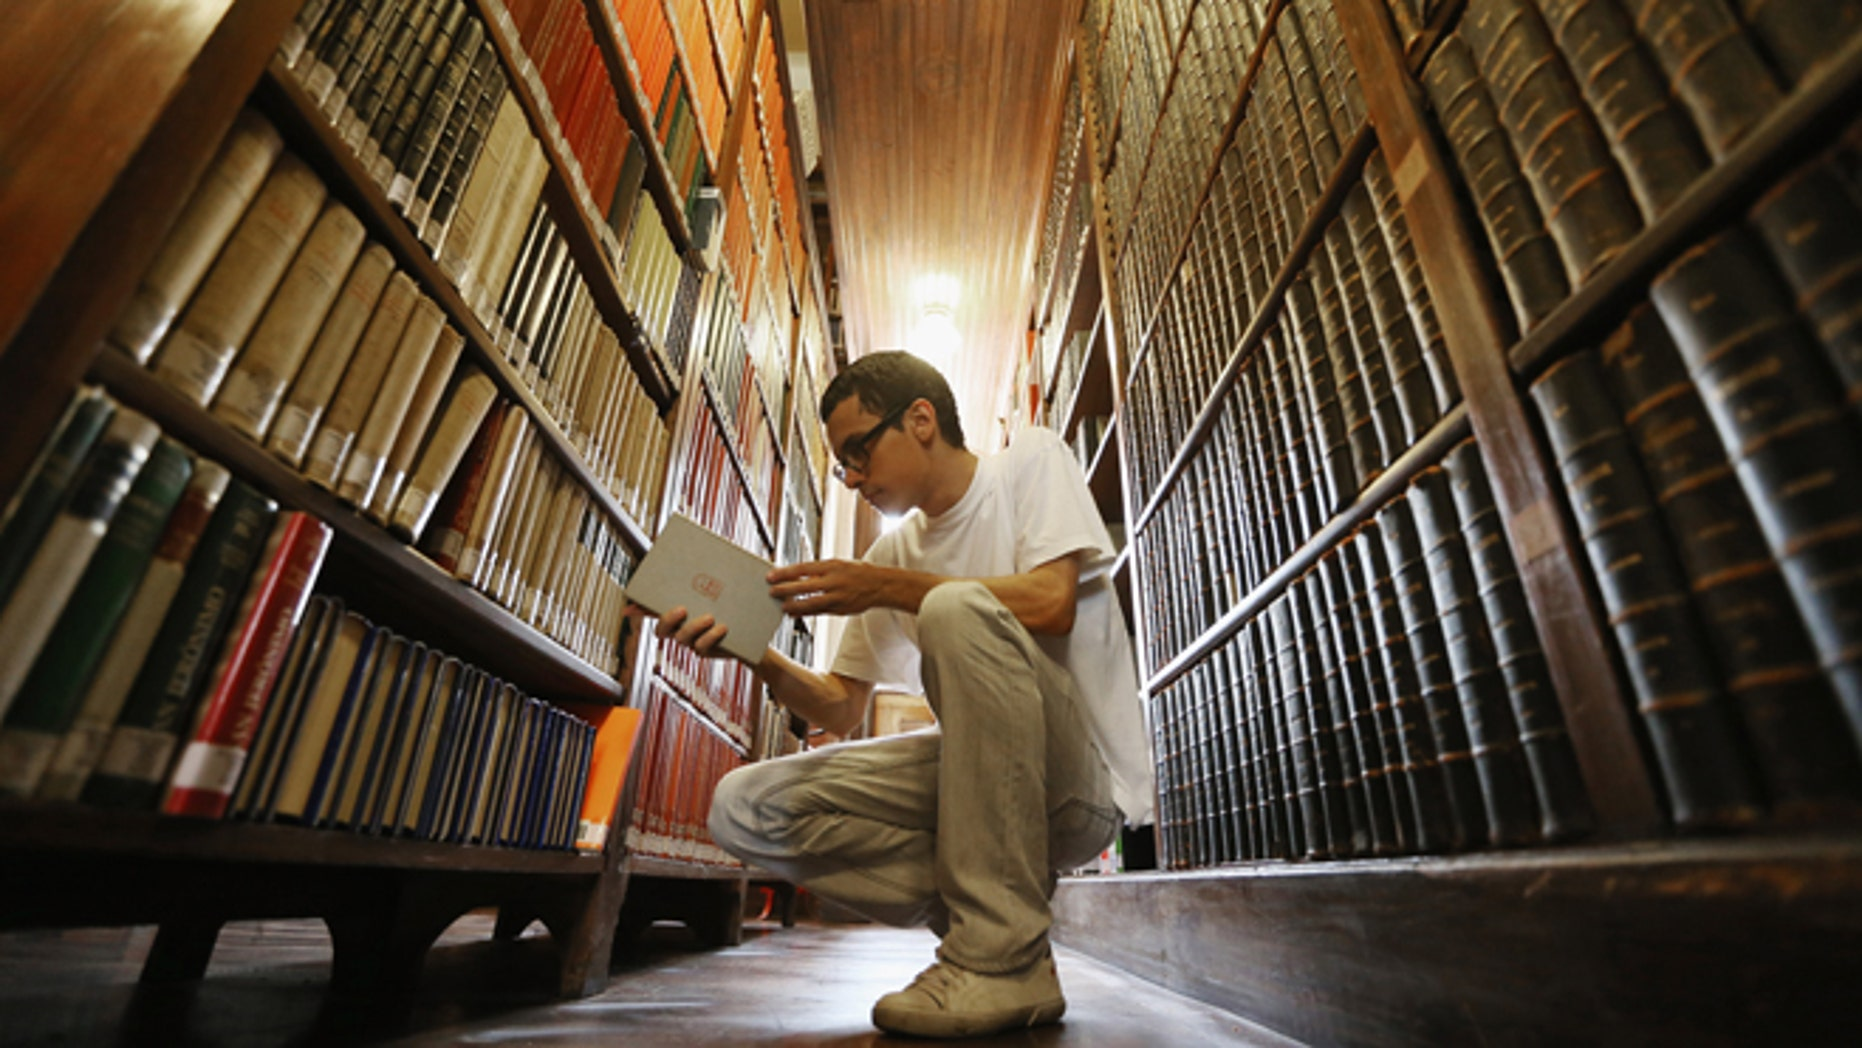 SAO PAULO, BRAZIL - MARCH 12:  Philosphy student Sergio Araujo sorts books in a 19th-century library inside Sao Bento Monastery on March 12, 2013 in Sao Paulo, Brazil. The monastery is said to be the oldest institution in Sao Paulo; Benedictines arrived at the site in 1598. Pope Benedict XVI visited Sao Bento in 2007. Brazil has more Catholics than any other country in the world and supporters hope Sao Paulo Archbishop Cardinal Odilo Pedro Scherer will be chosen as the next Pope during the papal conclave.  (Photo by Mario Tama/Getty Images)